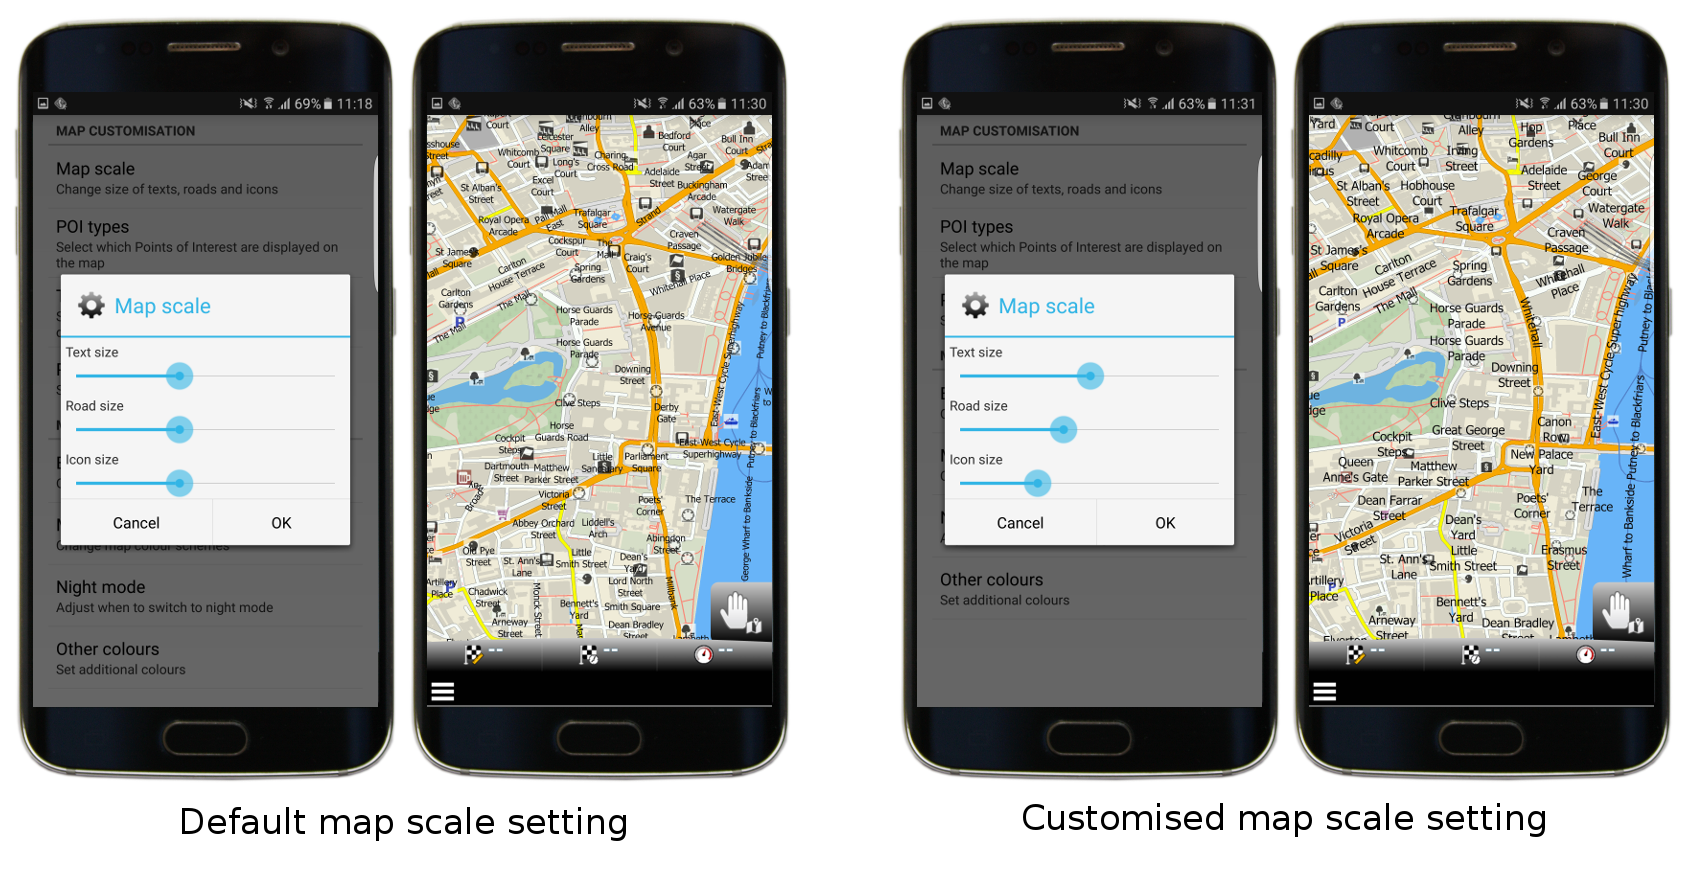 Map scale setting in mapfactor GPS Navigation app